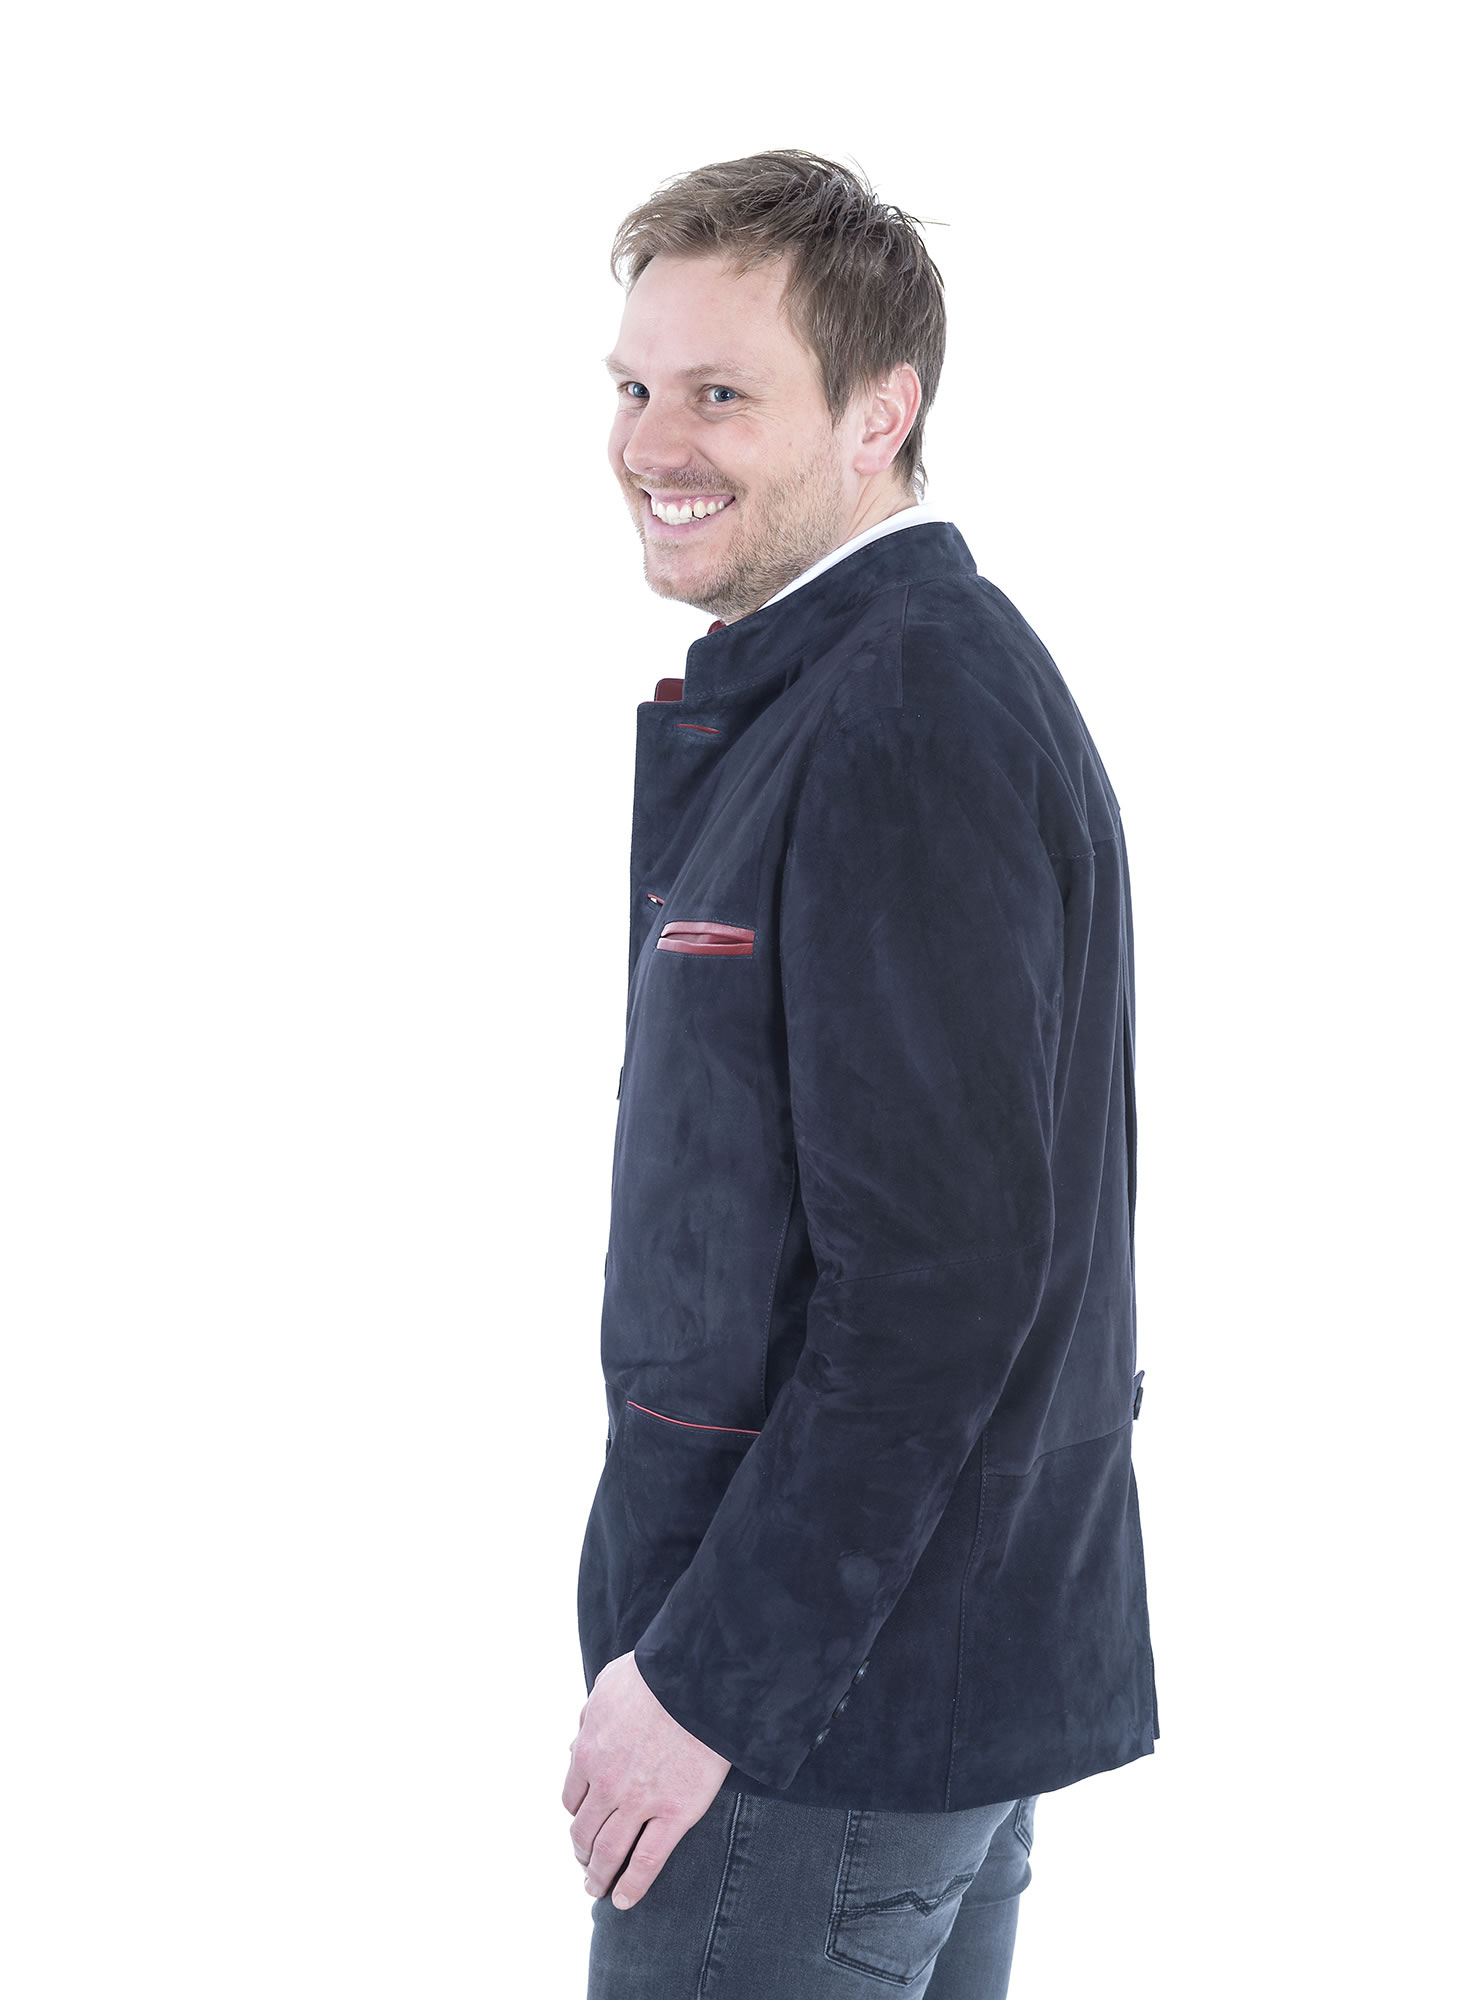 Traditional suede leather jacket in navy by Mersmann 103330